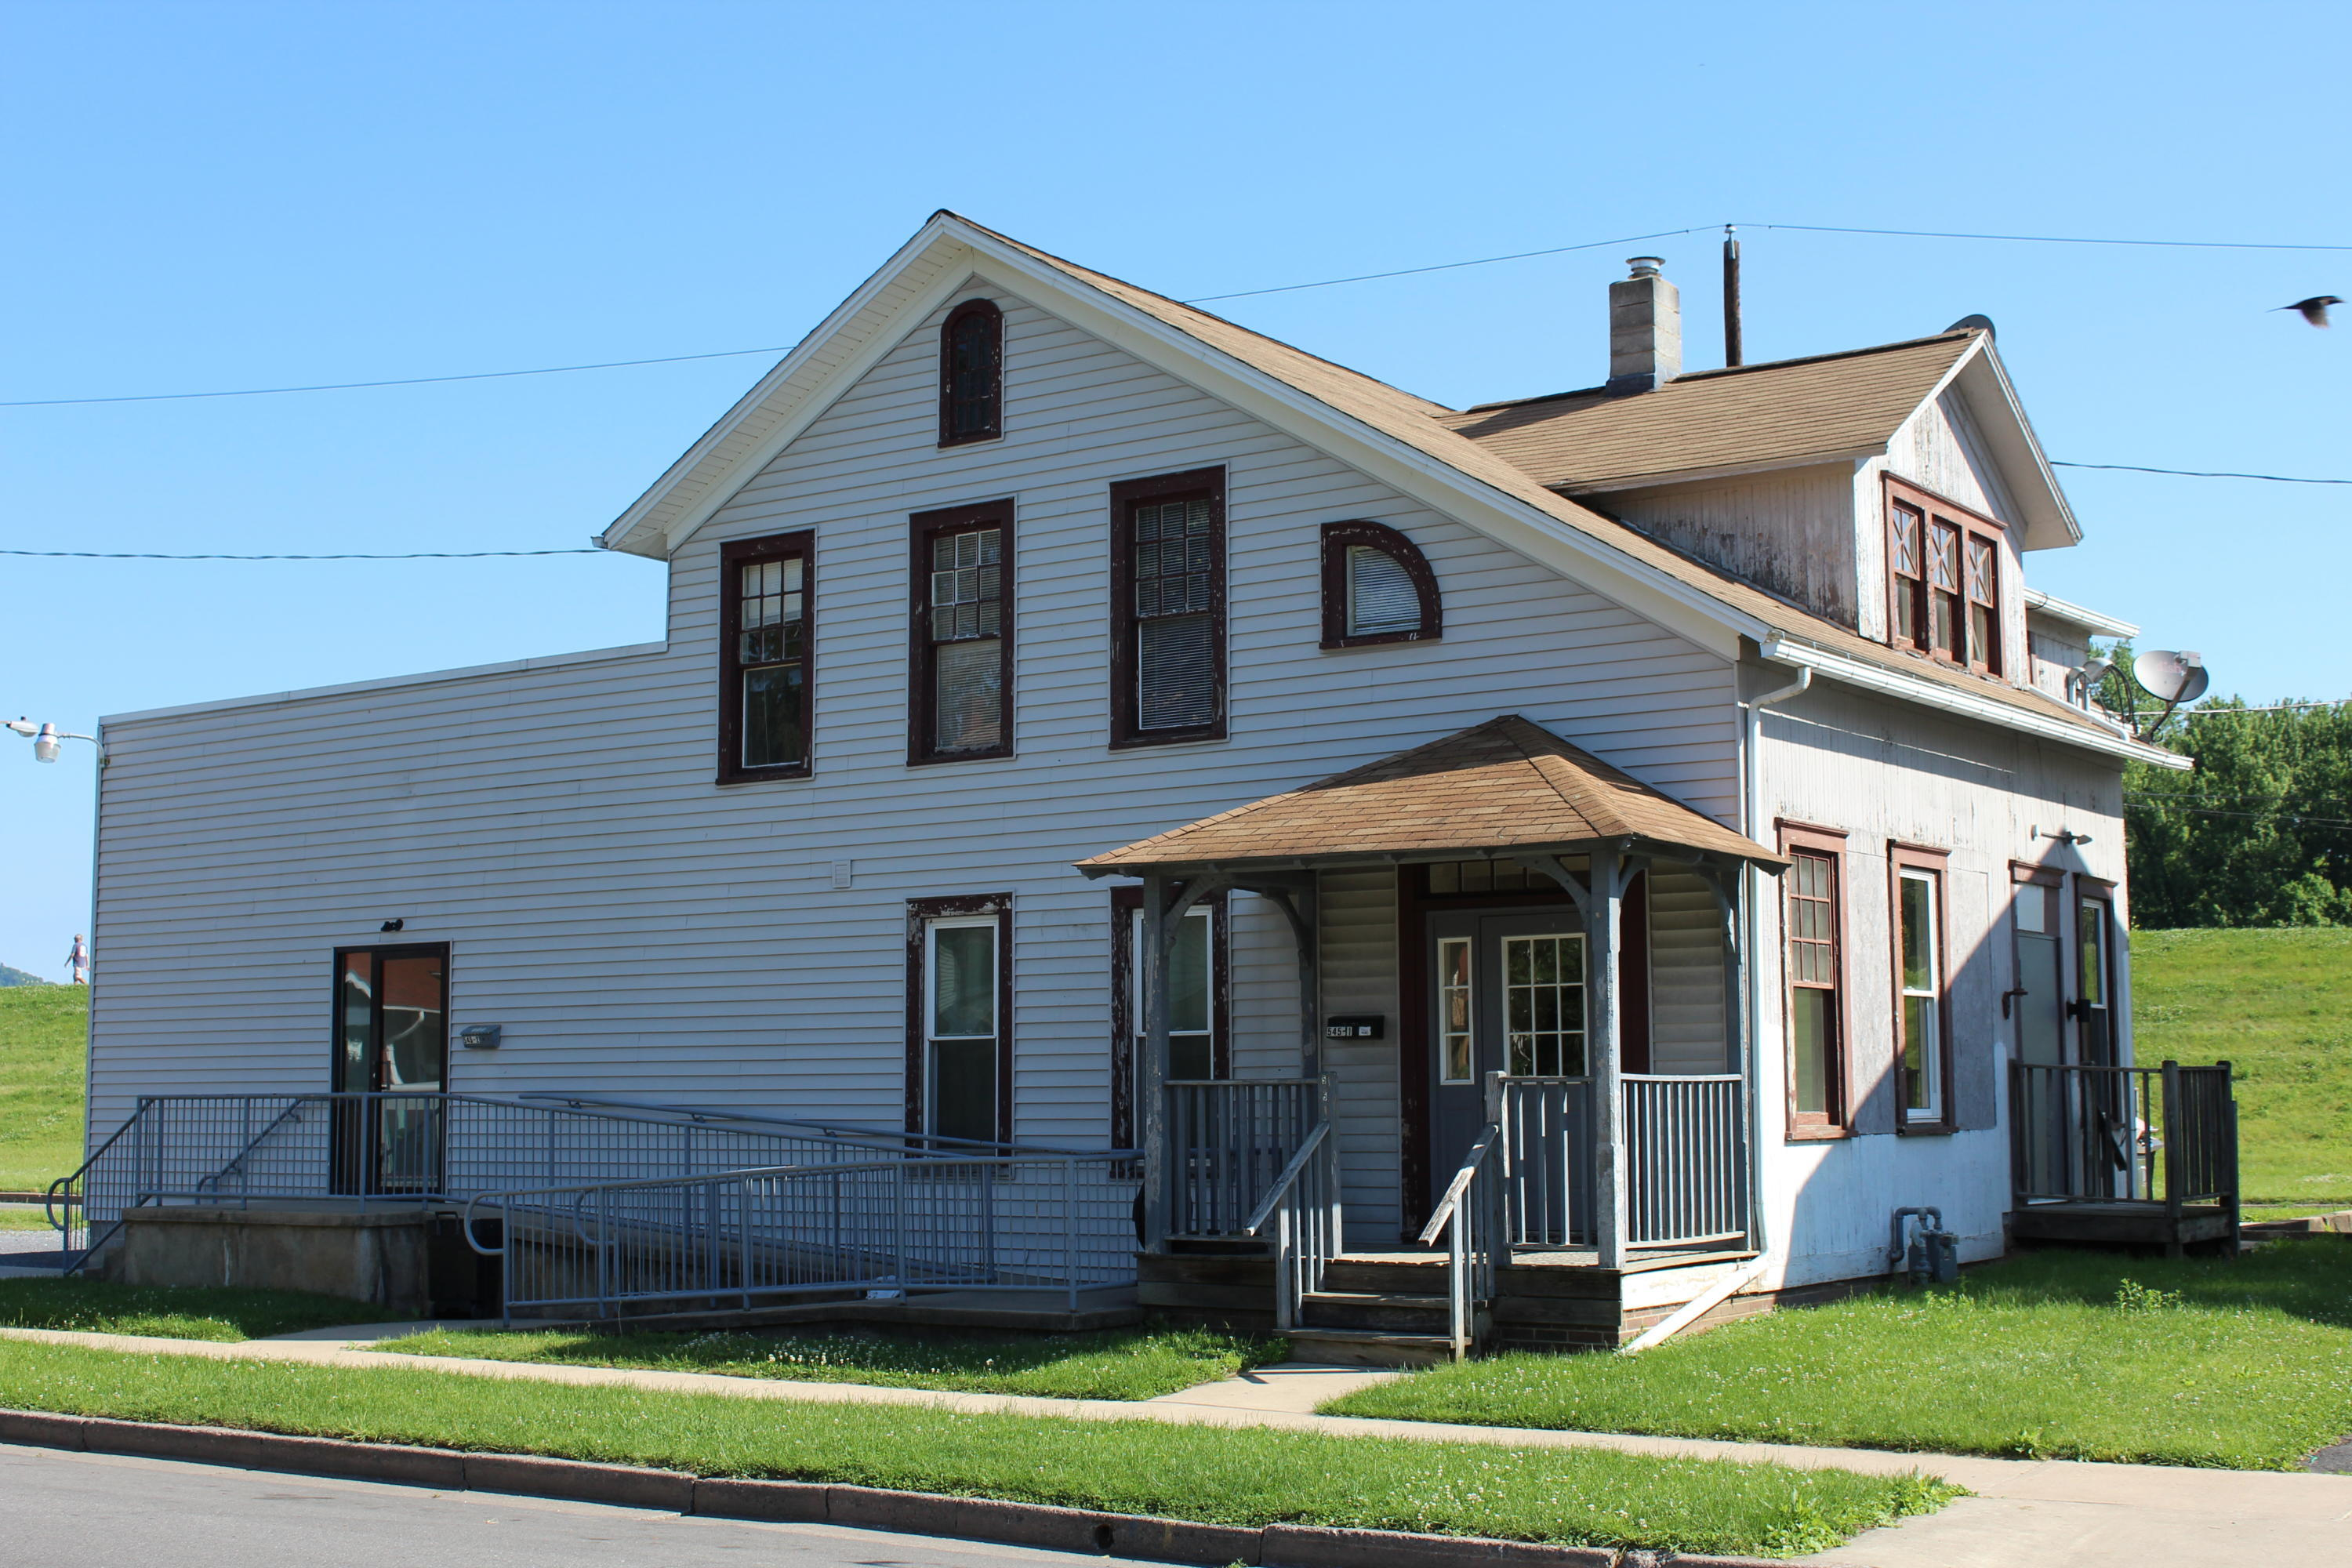 545 MAIN STREET, Lock Haven, PA 17745, ,Multi-units,For sale,MAIN,WB-92285